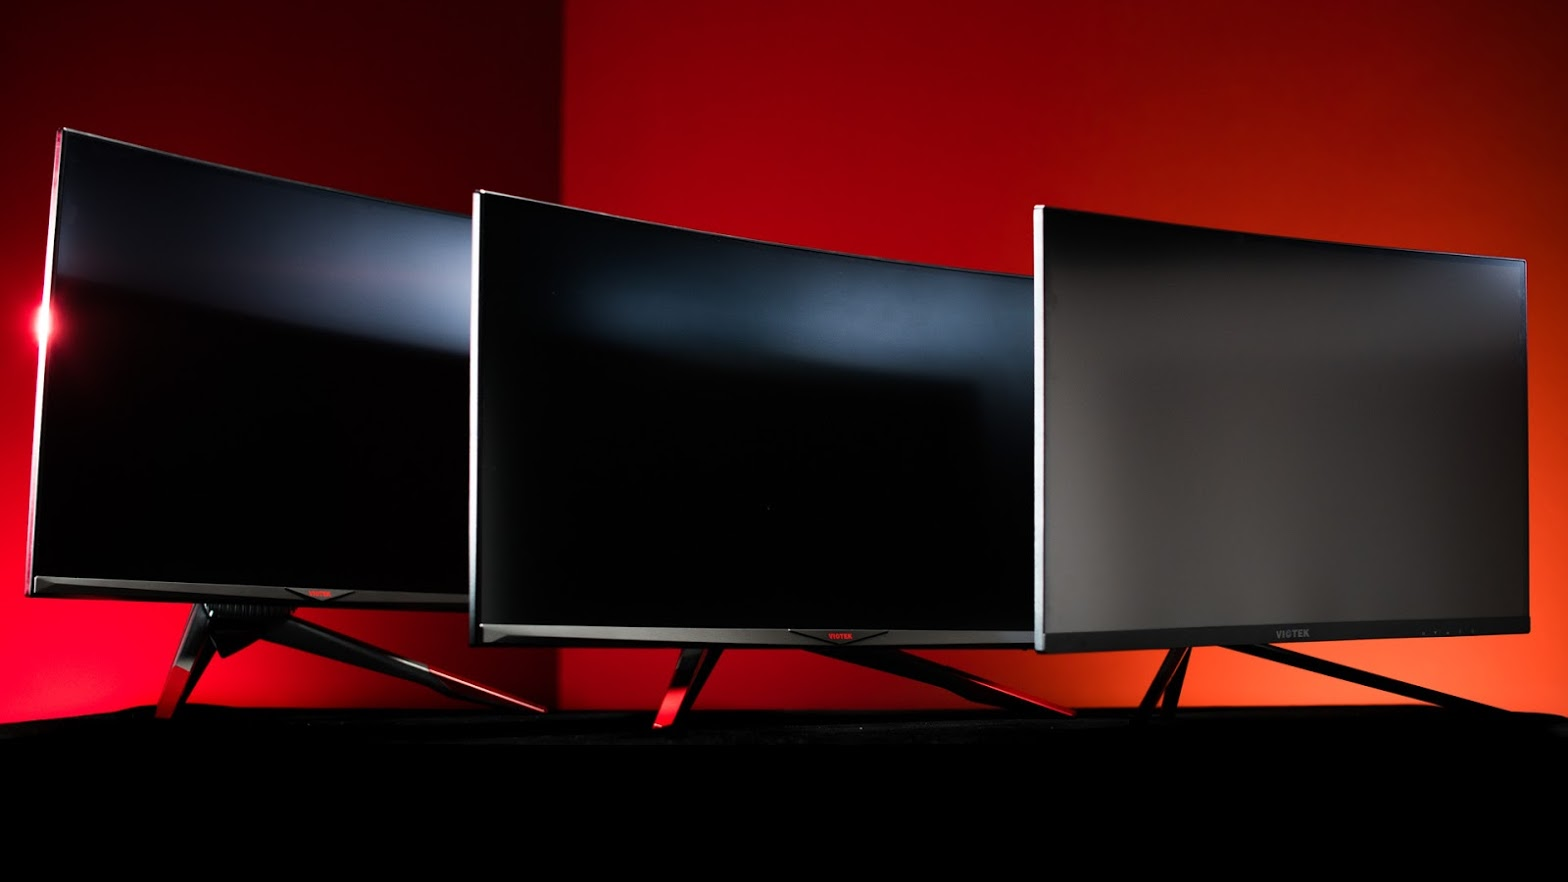 Three Viotek Gaming Monitors in different sizes, angled to the right, behind one another